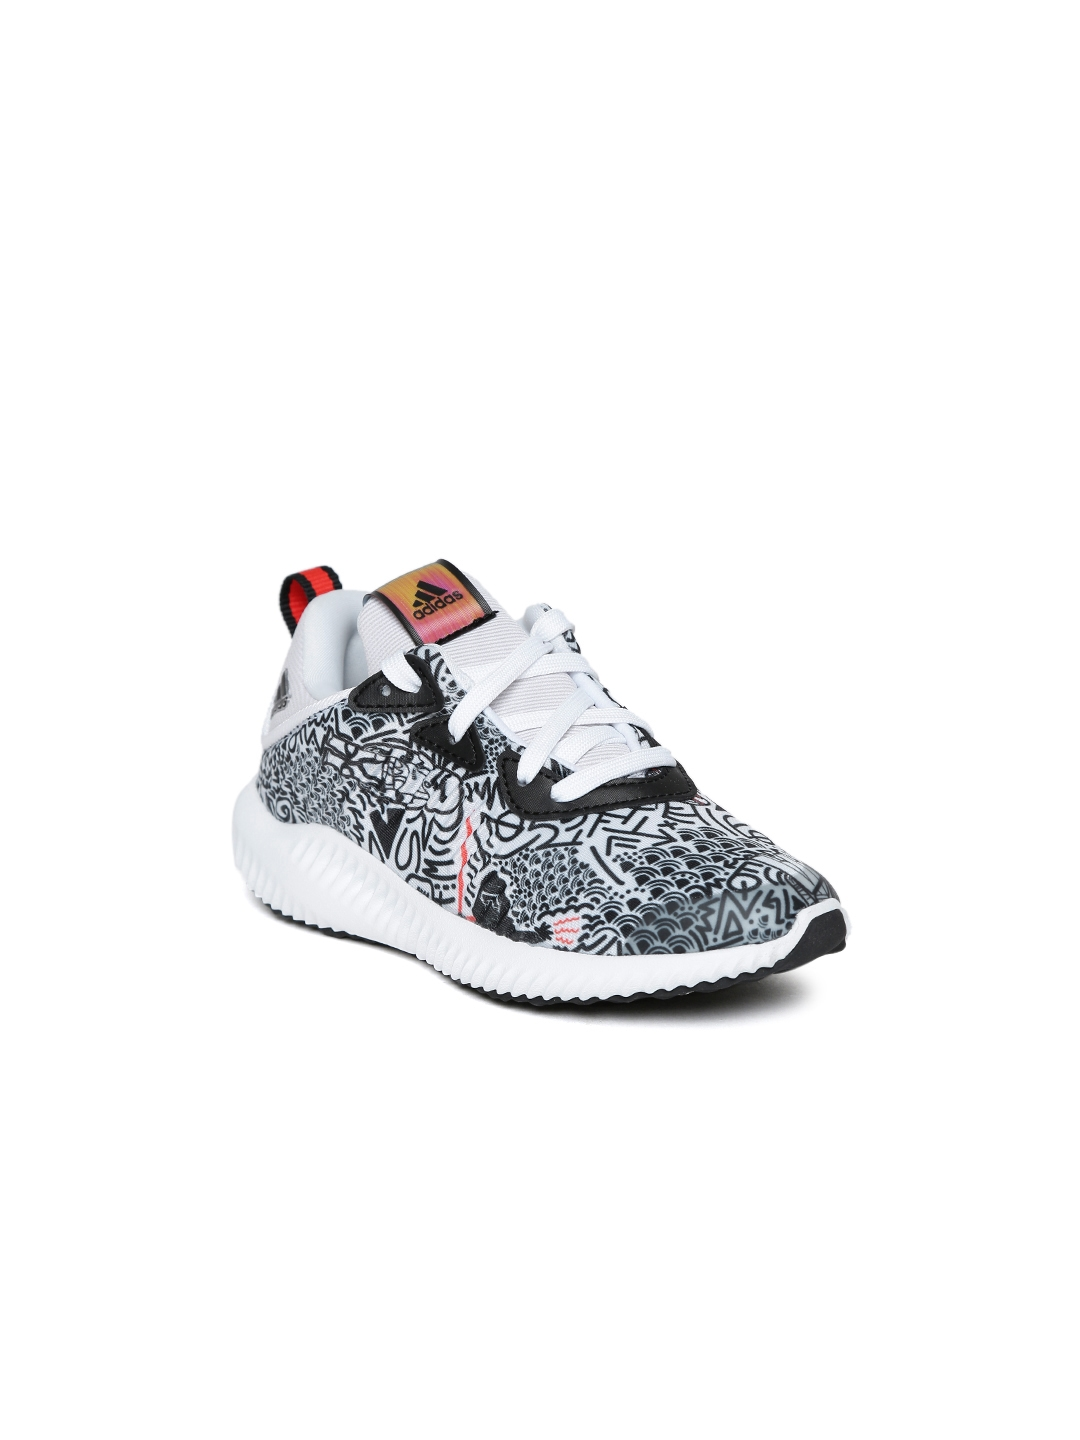 cda185bd17aa8 ADIDAS Kids White   Black Alphabounce Star Wars J Printed Running Shoes